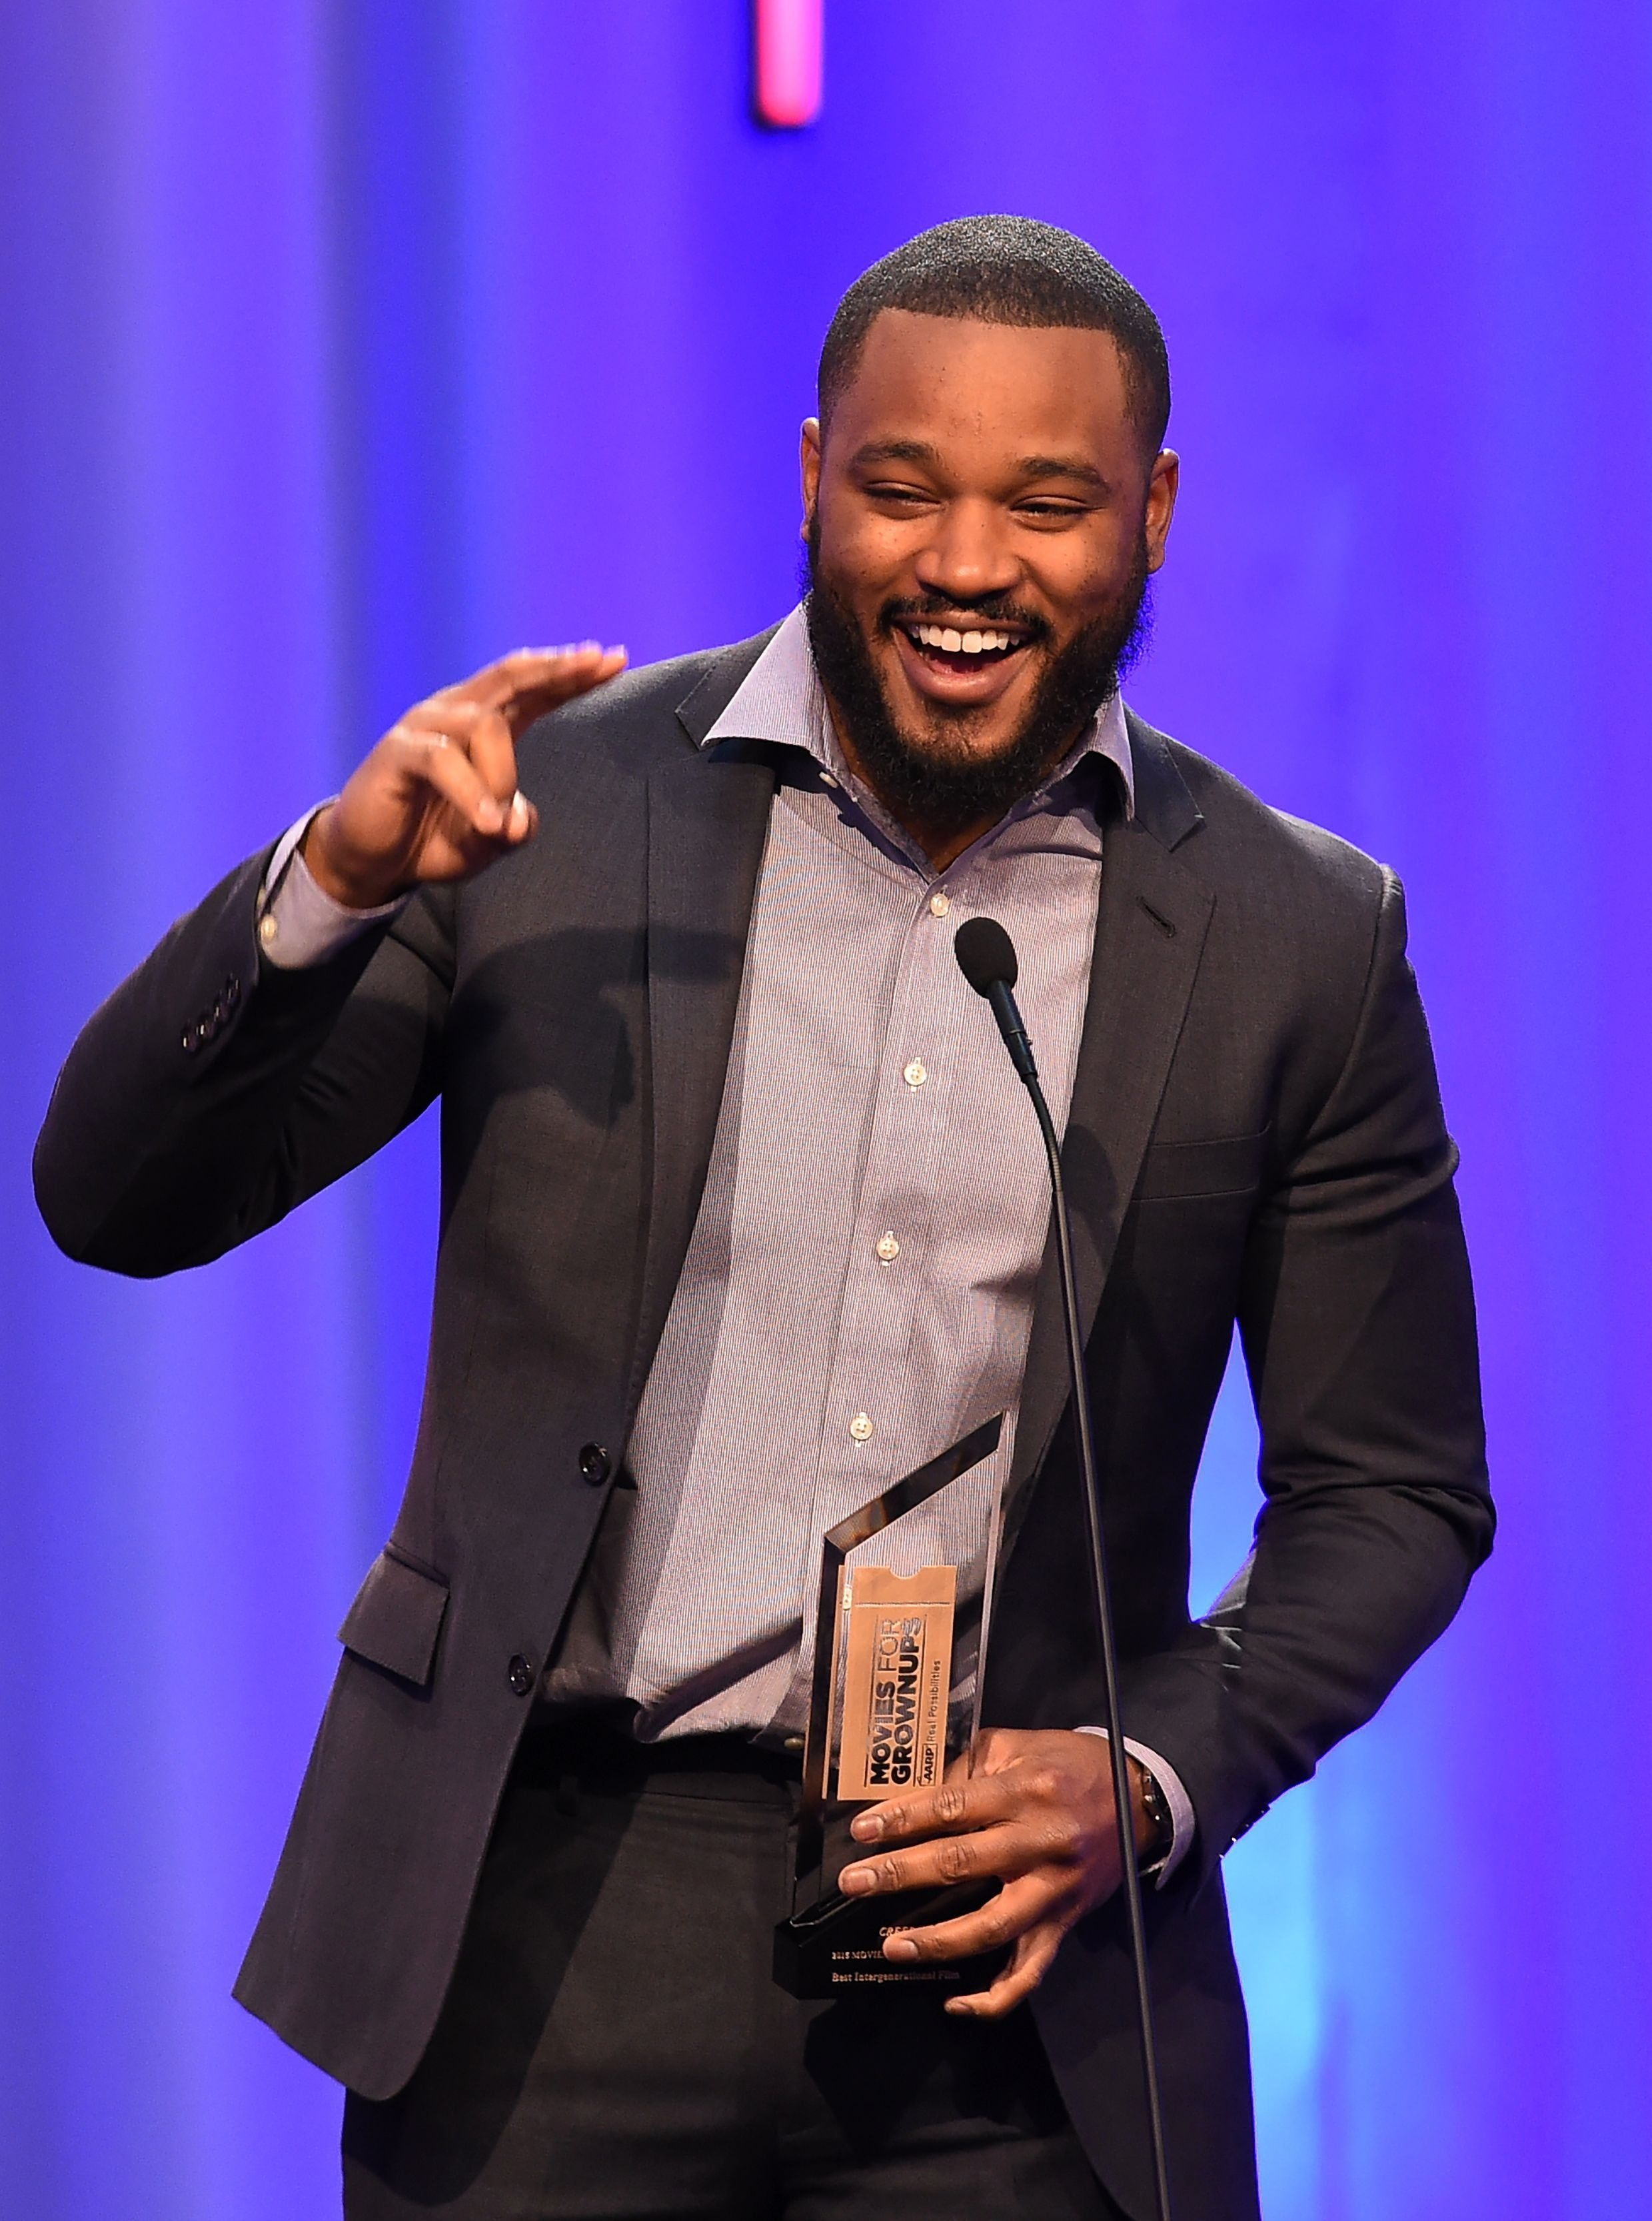 Director Ryan Coogler accepts the Best Integenerational Movie award for 'Creed'  at the AARP 15th Annual Movies For Grownups Awards, February 8, 2016, at the Beverly Wilshire Hotel in Beverly Hills, California. / AFP / ROBYN BECK        (Photo credit should read ROBYN BECK/AFP/Getty Images)